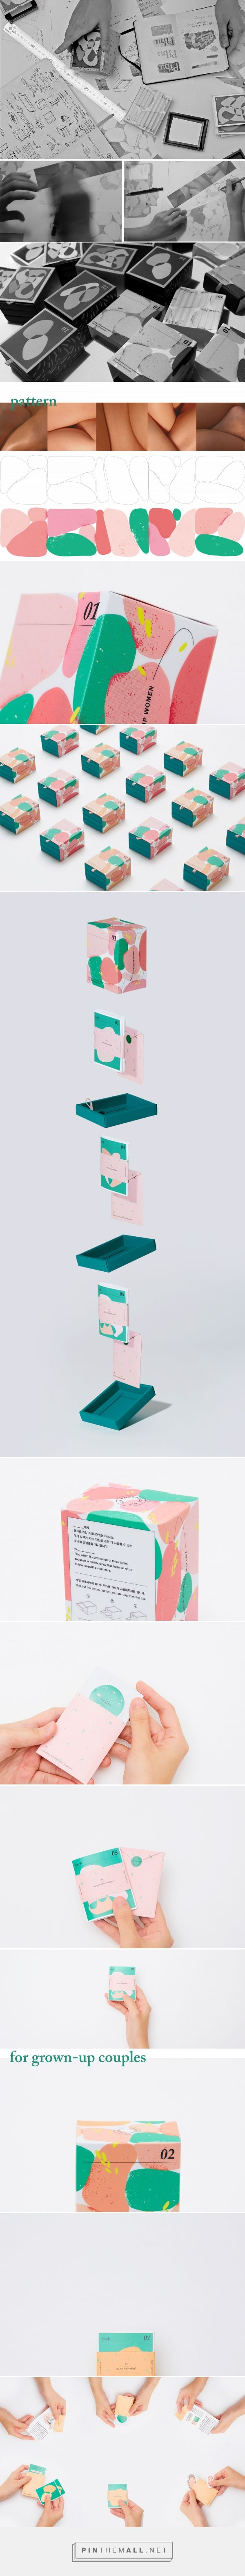 Pibu - Sex Education Kit for Grown-ups packaging design by Yeonjin Park - http://www.packagingoftheworld.com/2017/08/pibu-sex-education-kit-for-grown-ups.html